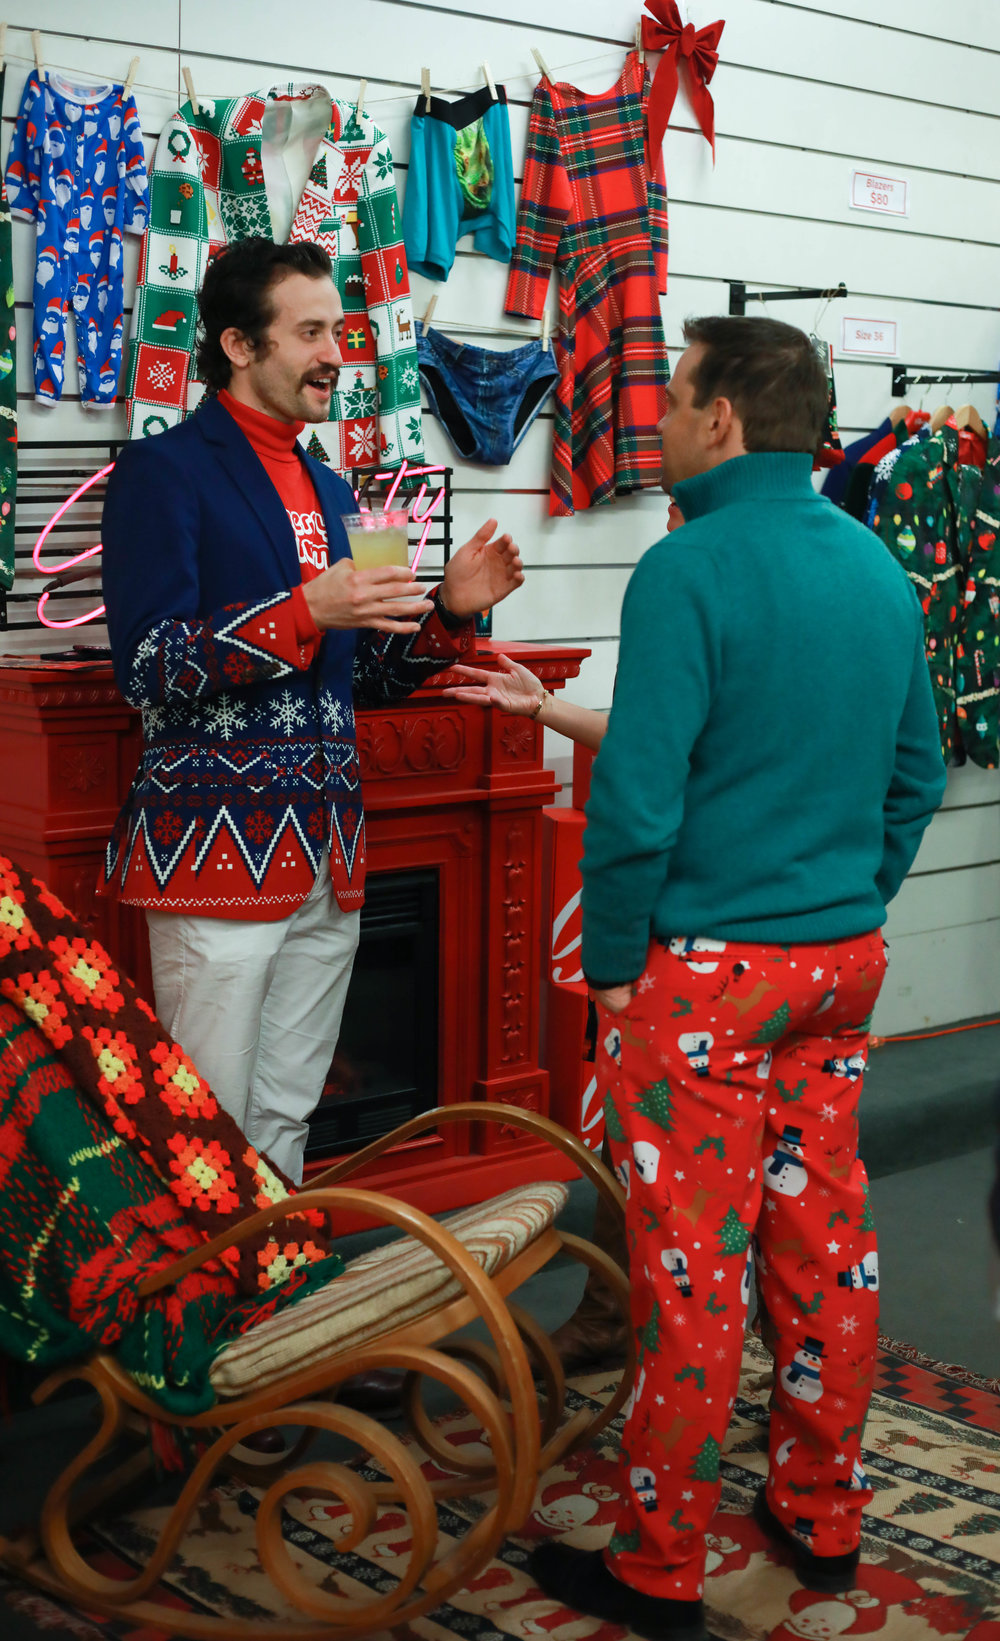 Holiday revelers shopping threads from Shinesty (Photo Cred: Meesh Deyden)